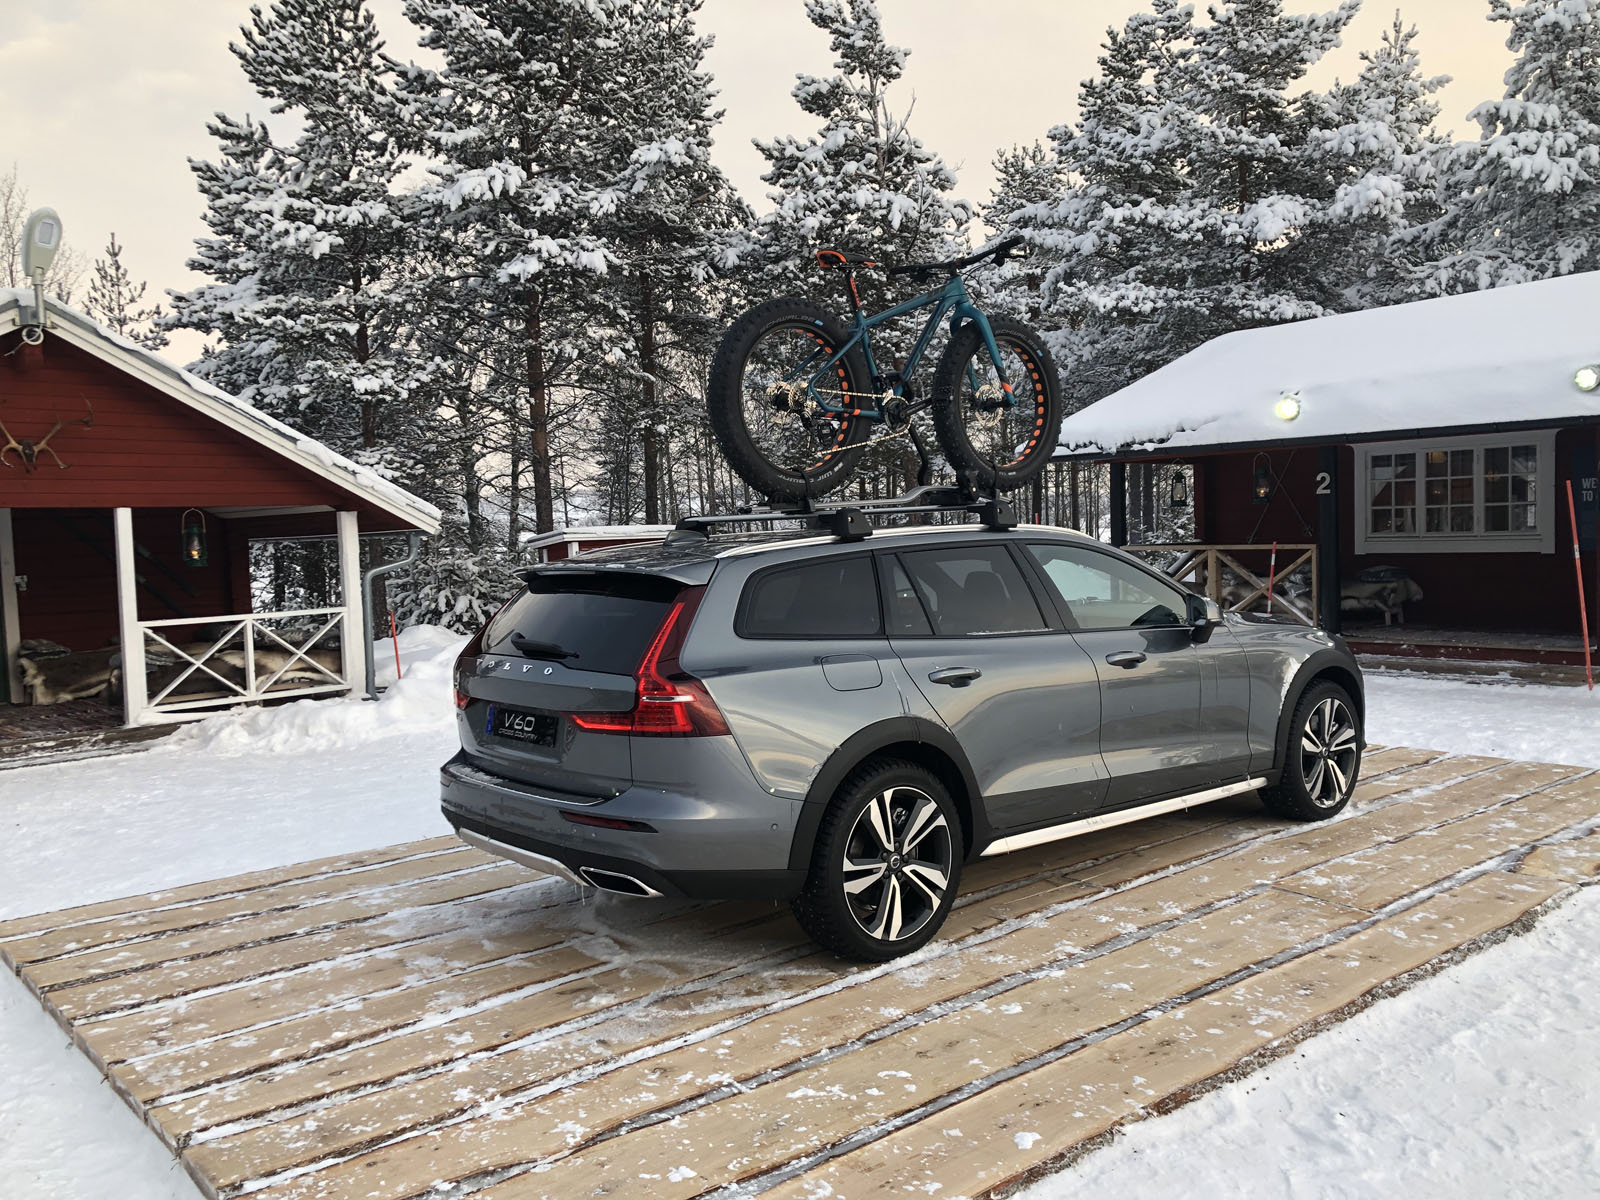 2019 Volvo V60 Cross Country First Drive Review Image